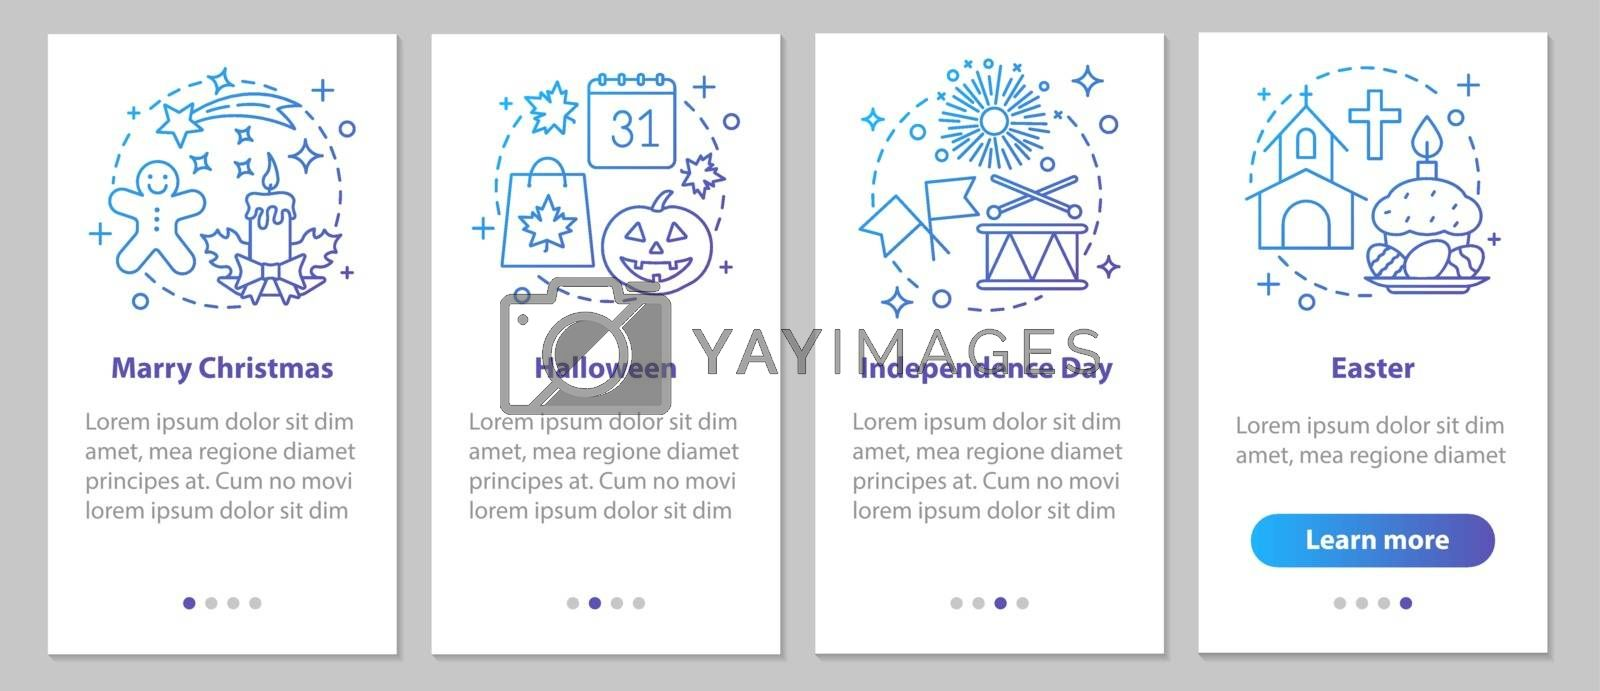 Seasonal holidays onboarding mobile app page screen with linear  by bsd